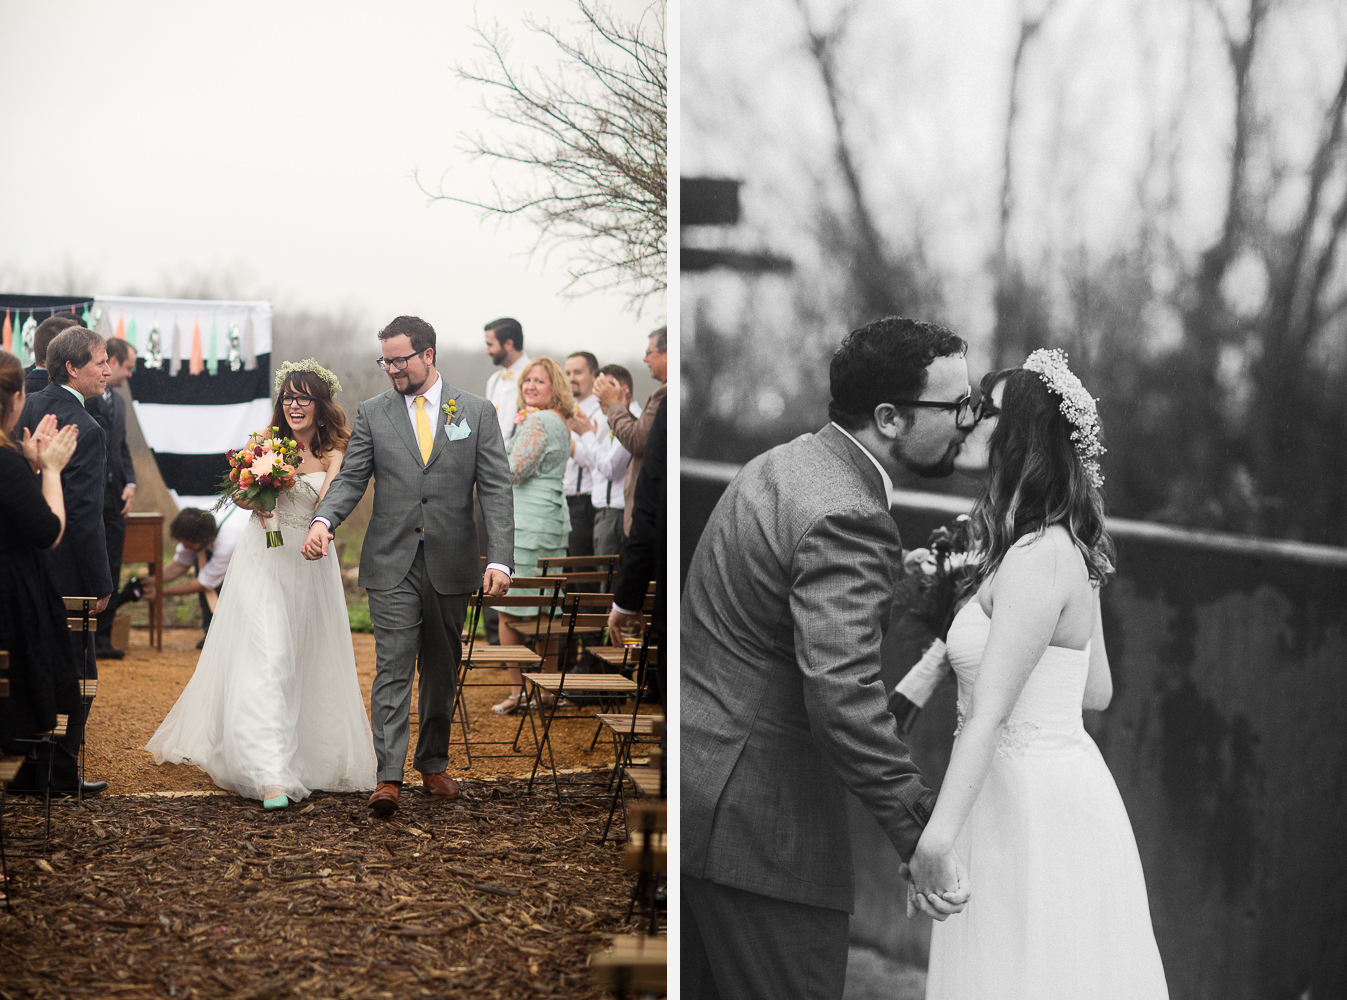 Wedding at Trinity River Audubon Center, Butteryfly Garden